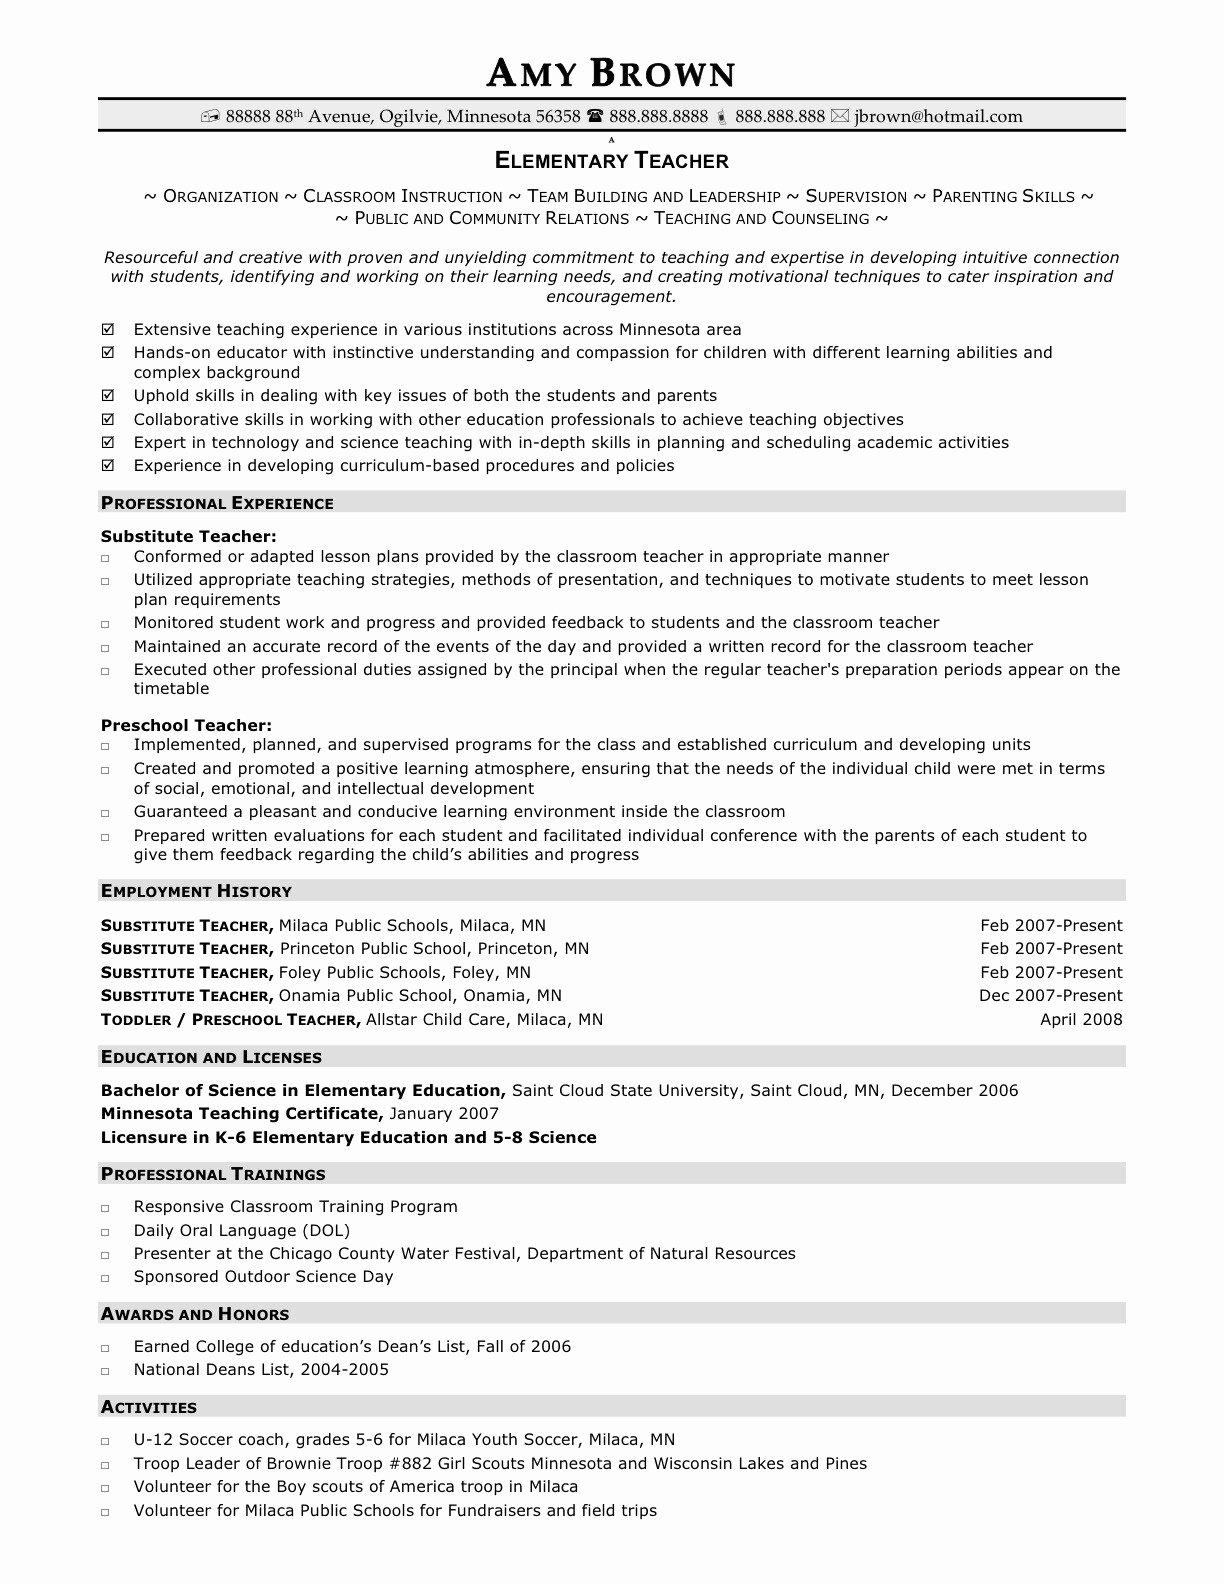 Resume for Elementary Teachers Teacher Resume Examples